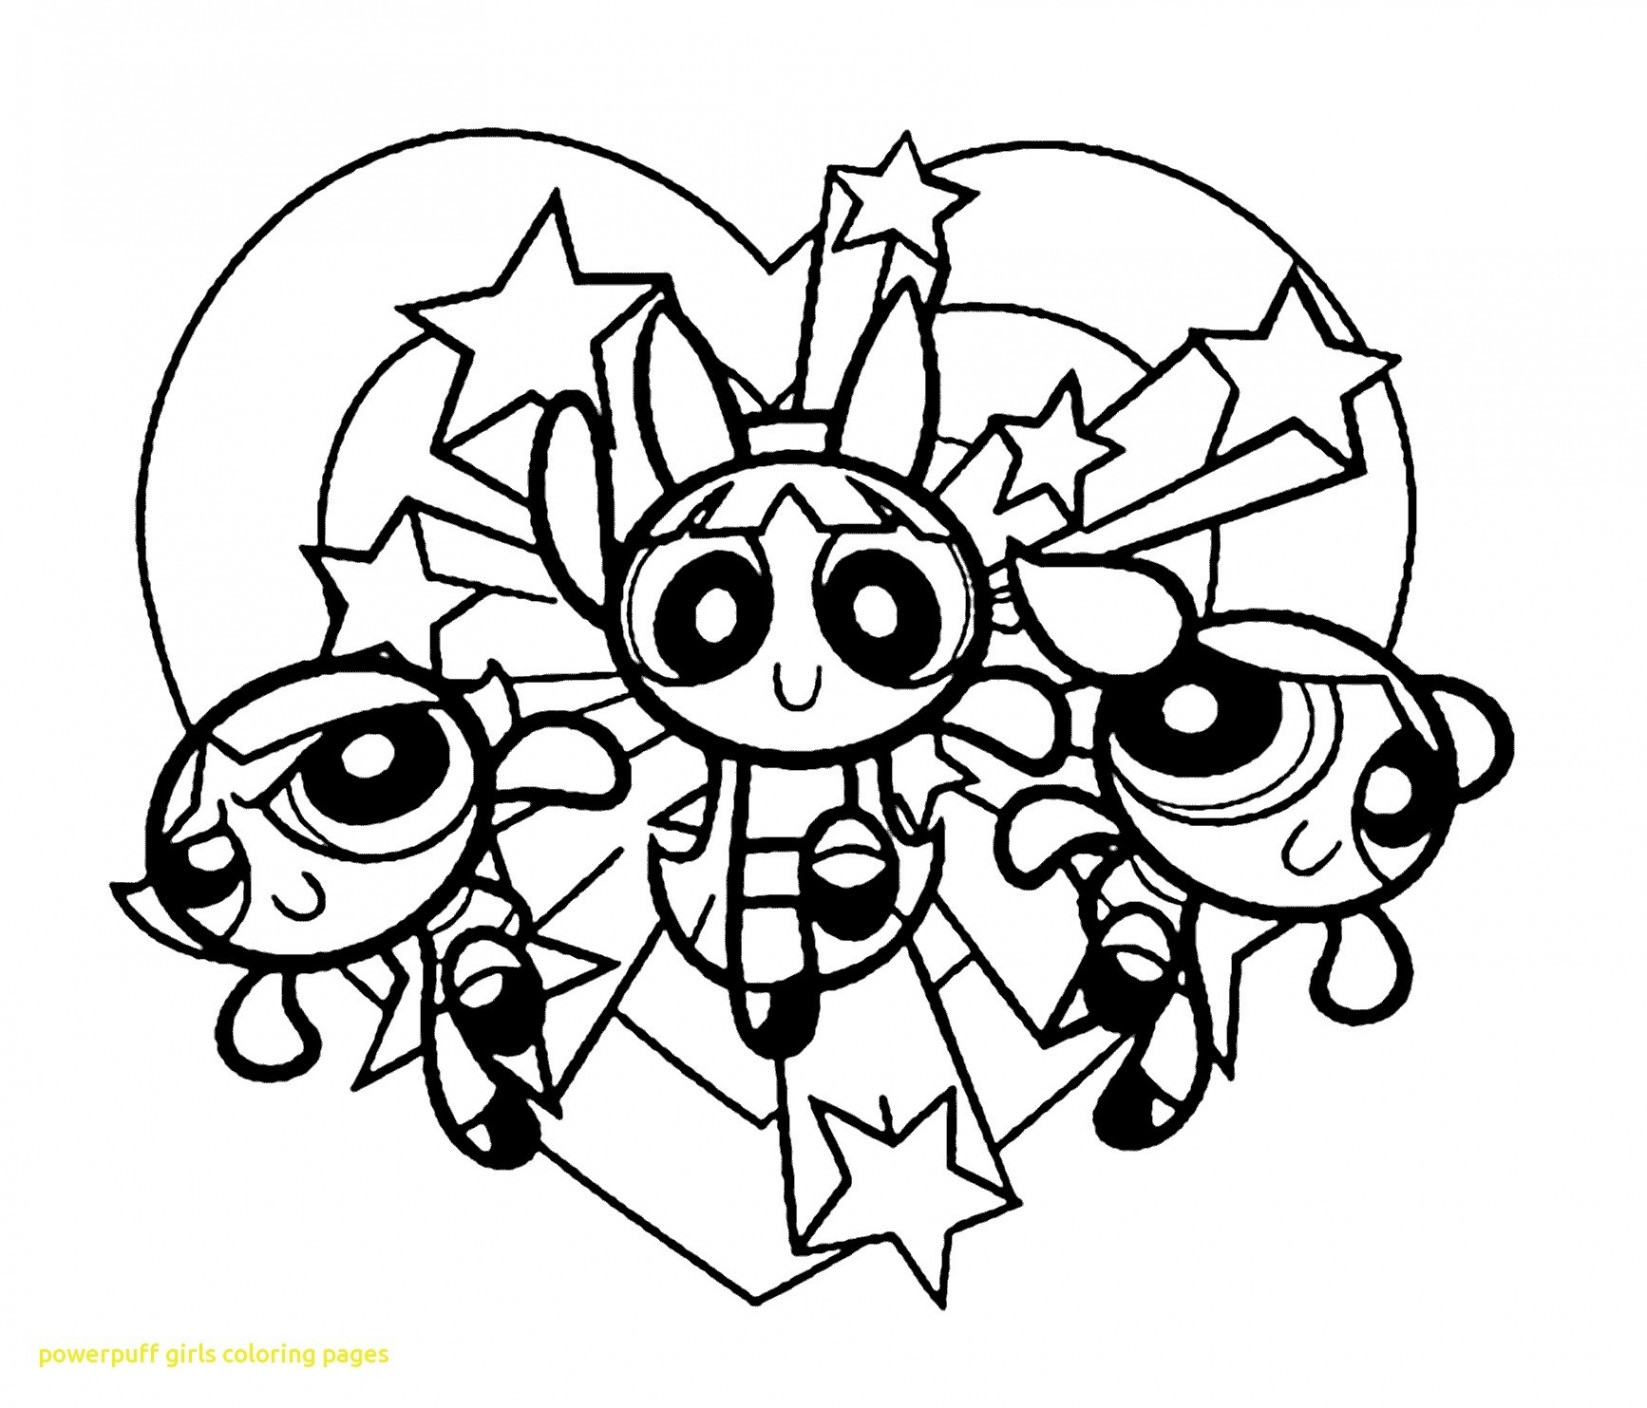 Powder Puff Girls Coloring Pages Printable Elegant Powerpuff Girls Z Coloring Pages with Fun Time and